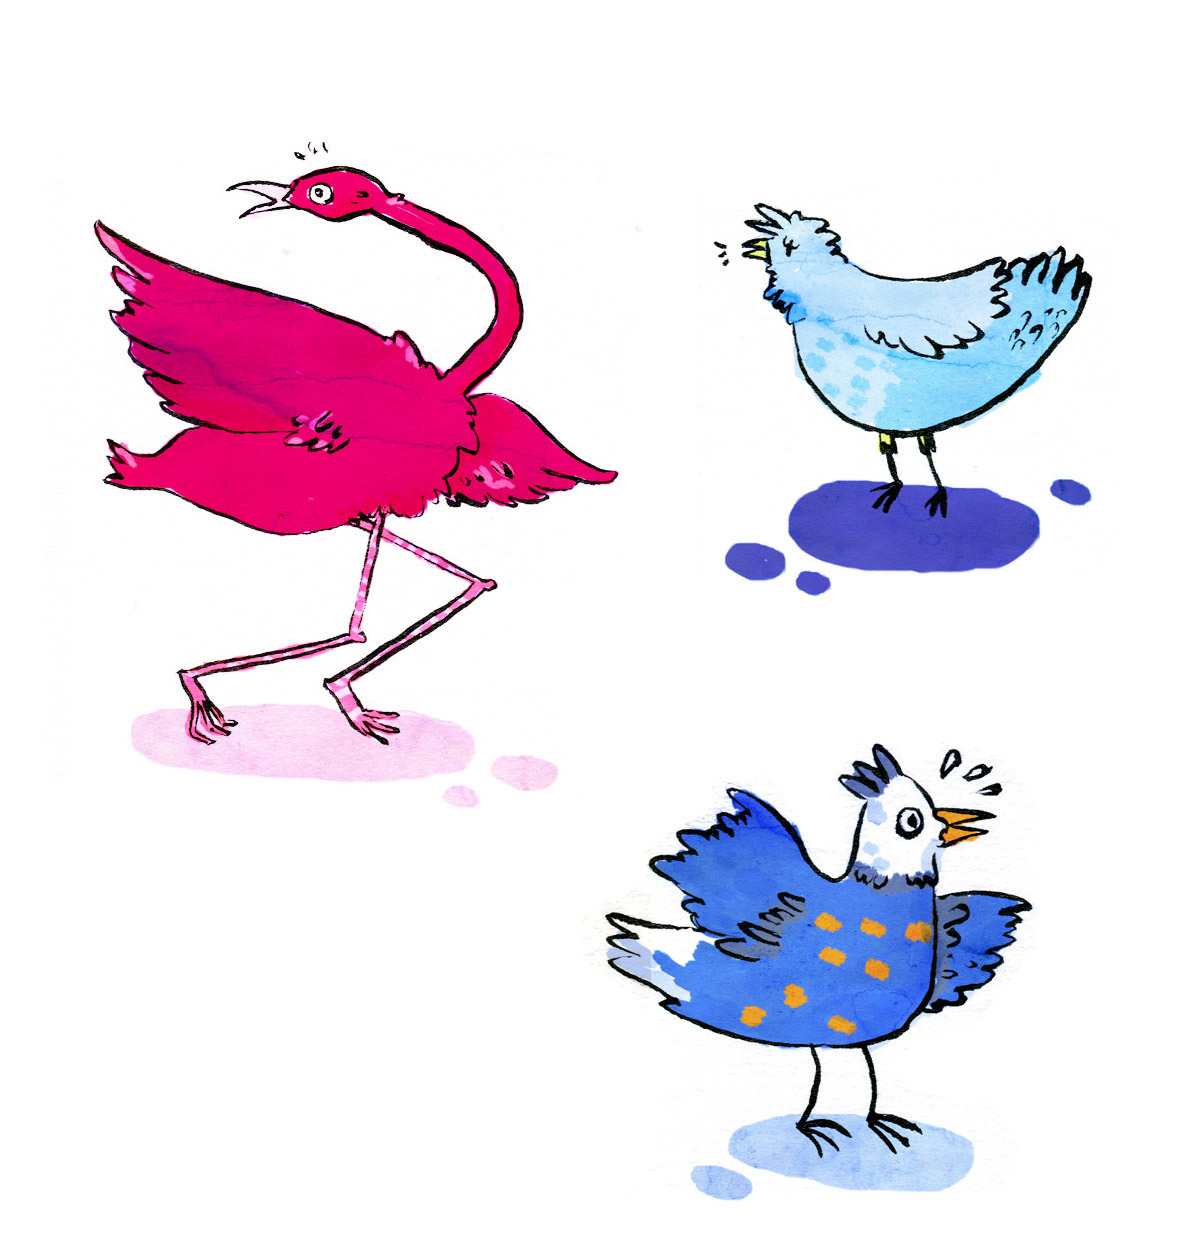 Crazy crazy birds for some publicity material I drew recently.